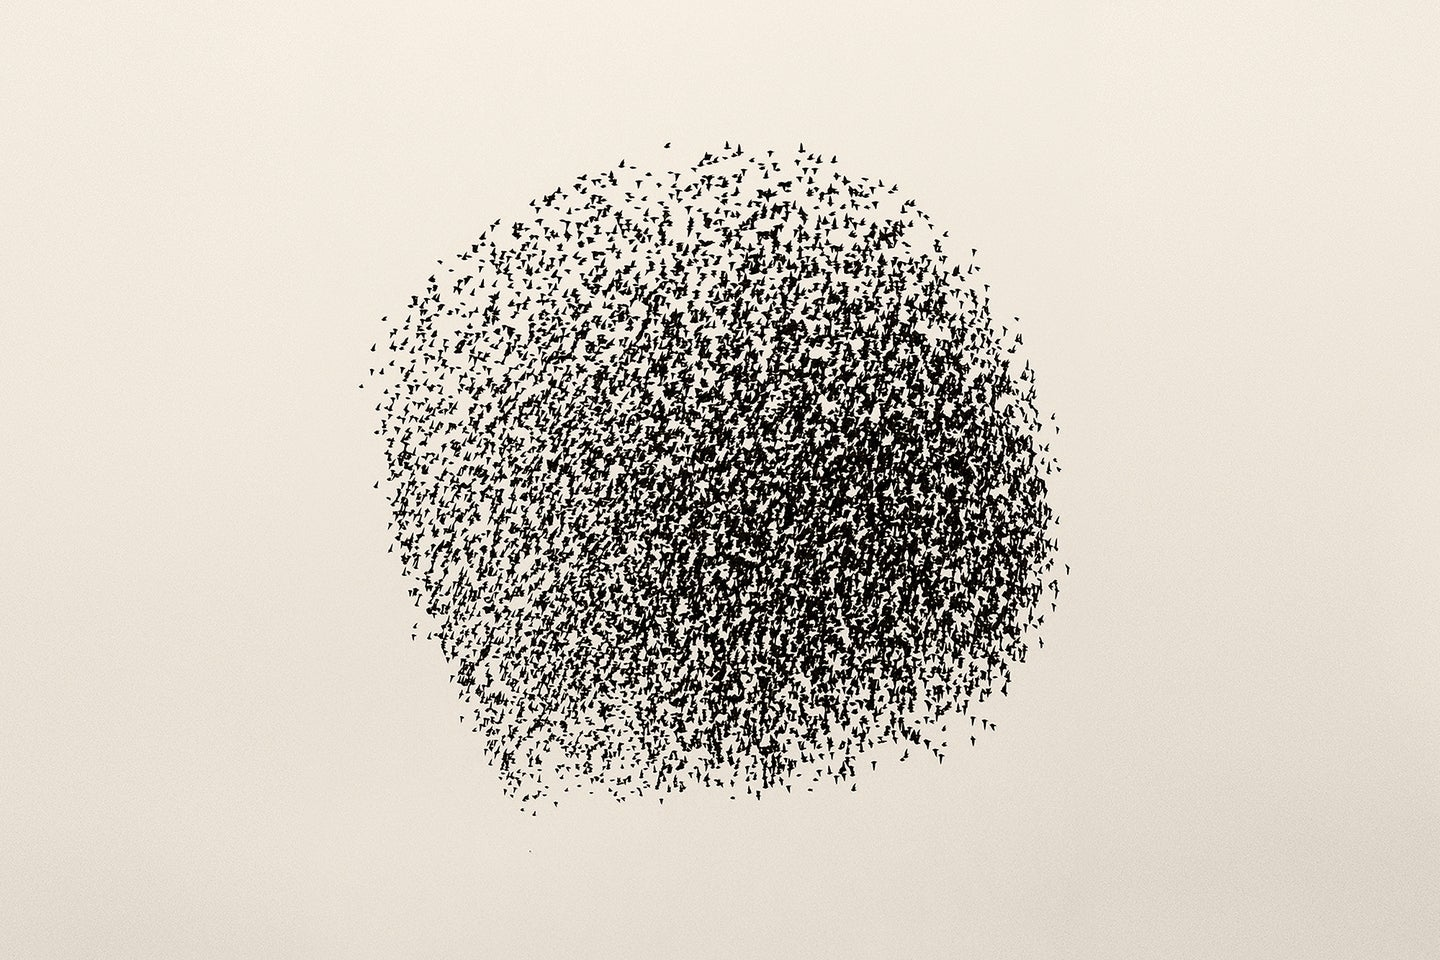 a murmuration of starlings form a large sphere